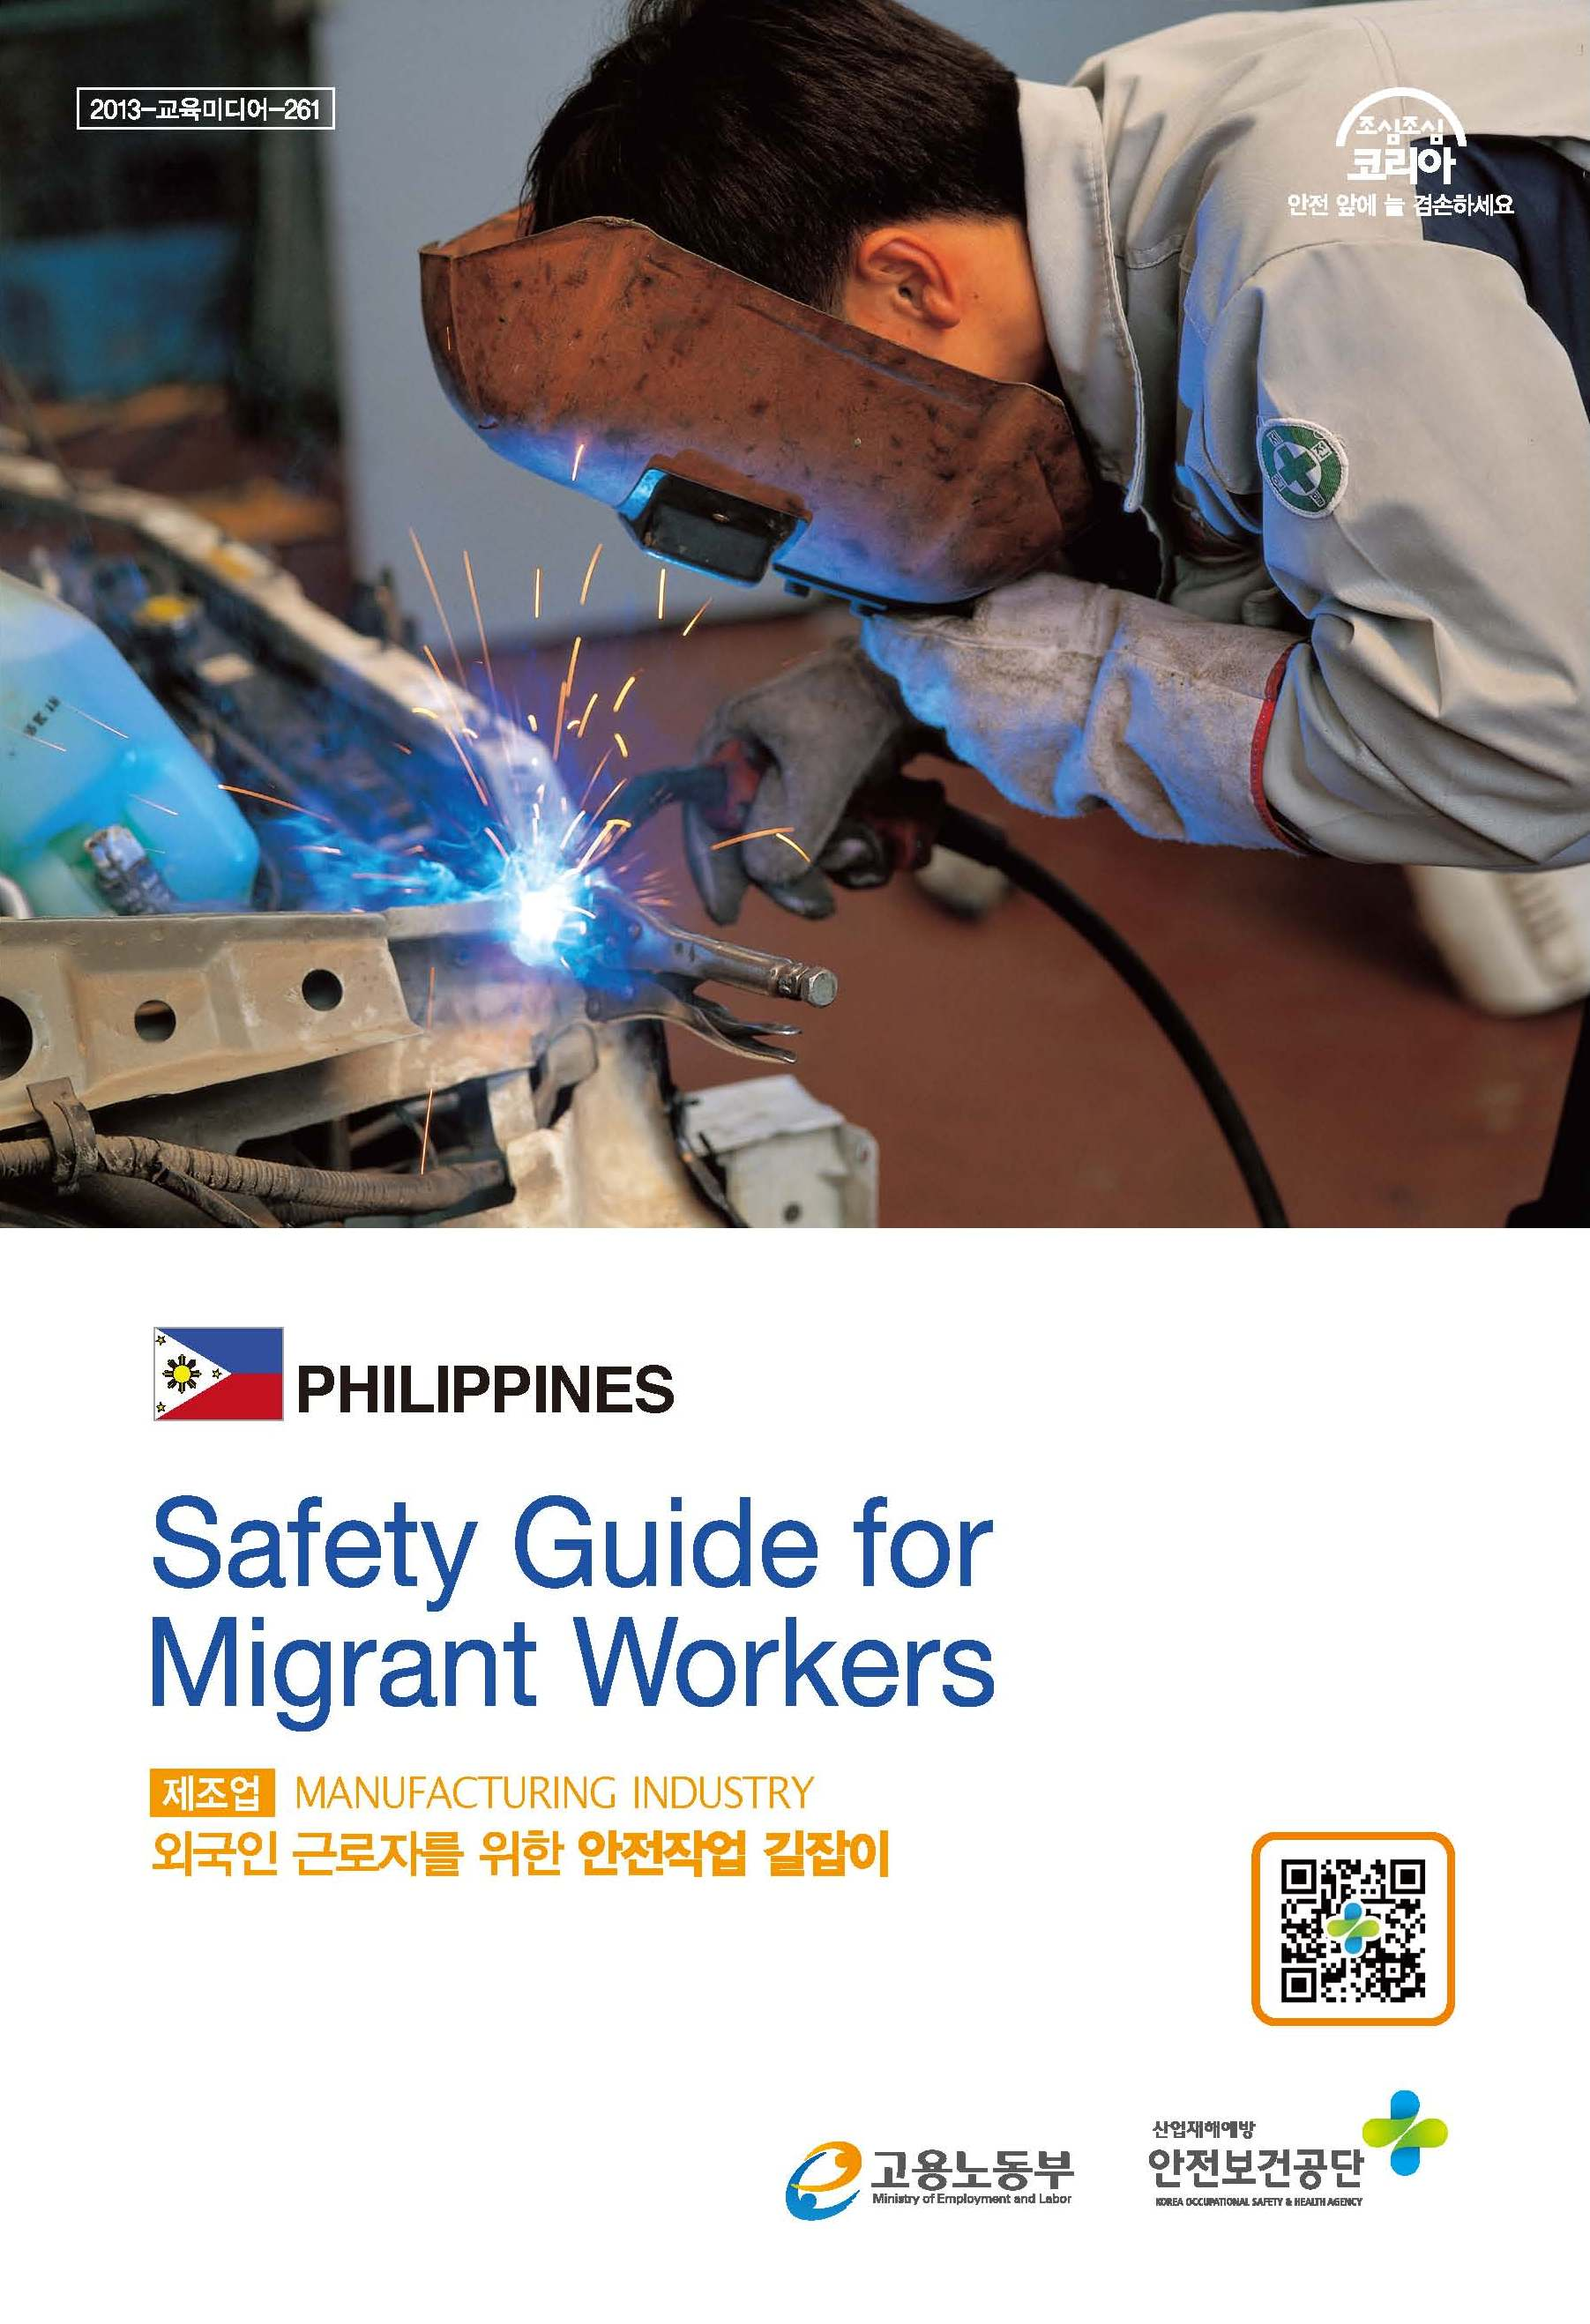 (Manufacturing Industry) Safety Guide for Foreign Workers (English-Filipino)(제조업)외국인근로자를 위한 안전작업길잡이(영어-필리핀)